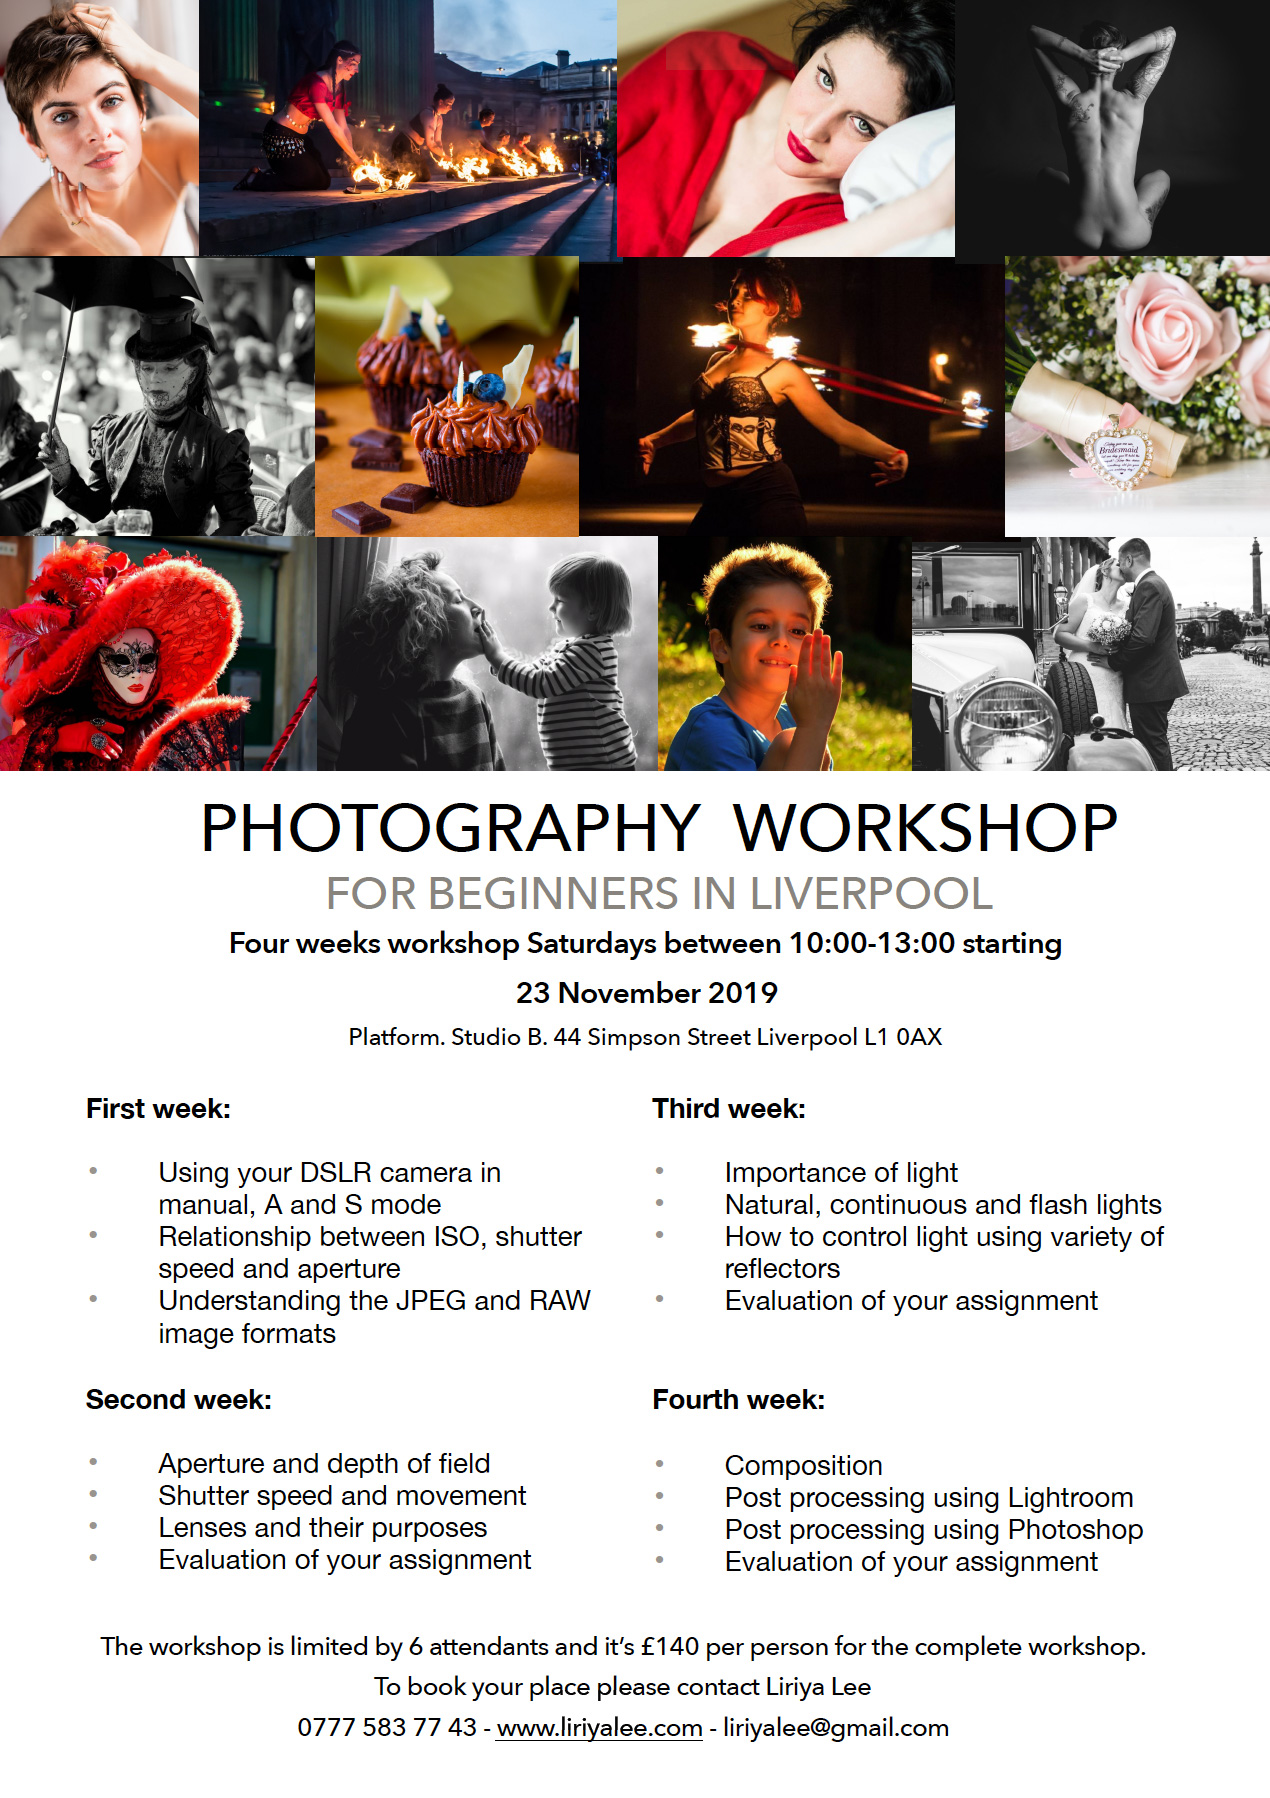 Baltic Creative: Photography Workshops for Beginners